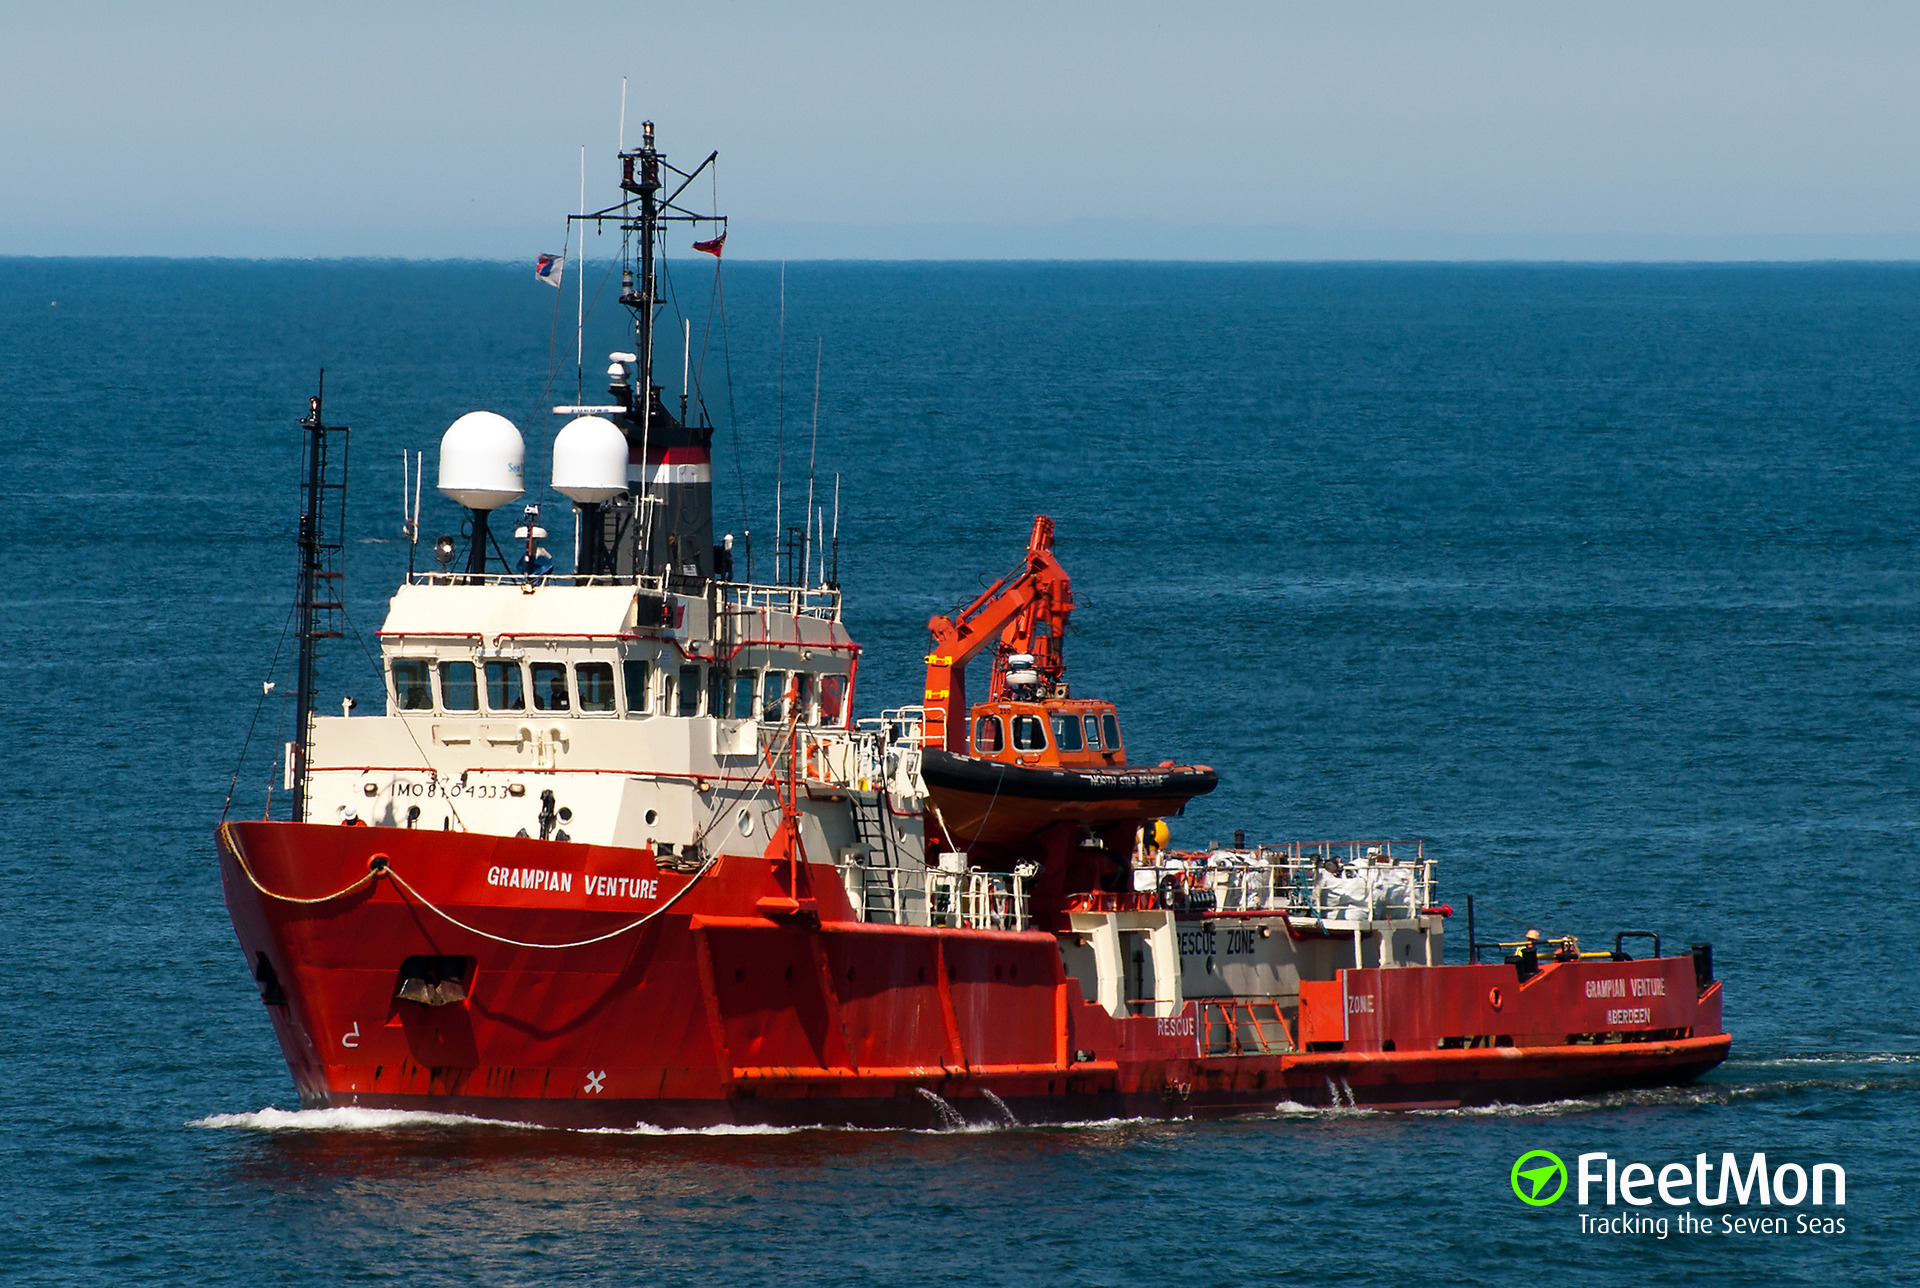 Standby vessel Grampian Venture in trouble, North Sea